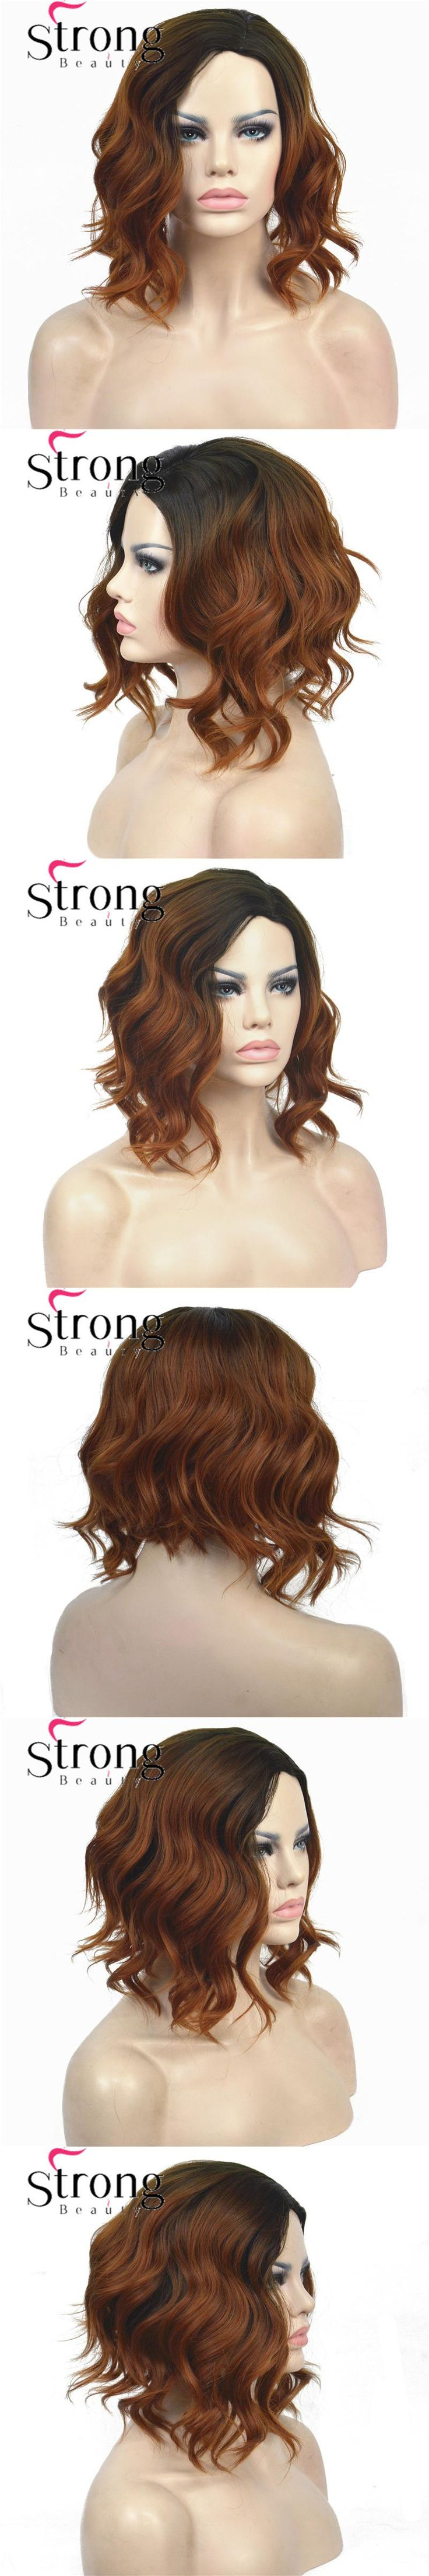 StrongBeauty Short Black/Brown Ombre Bob, Side Part, No Bangs Full Synthetic Wig